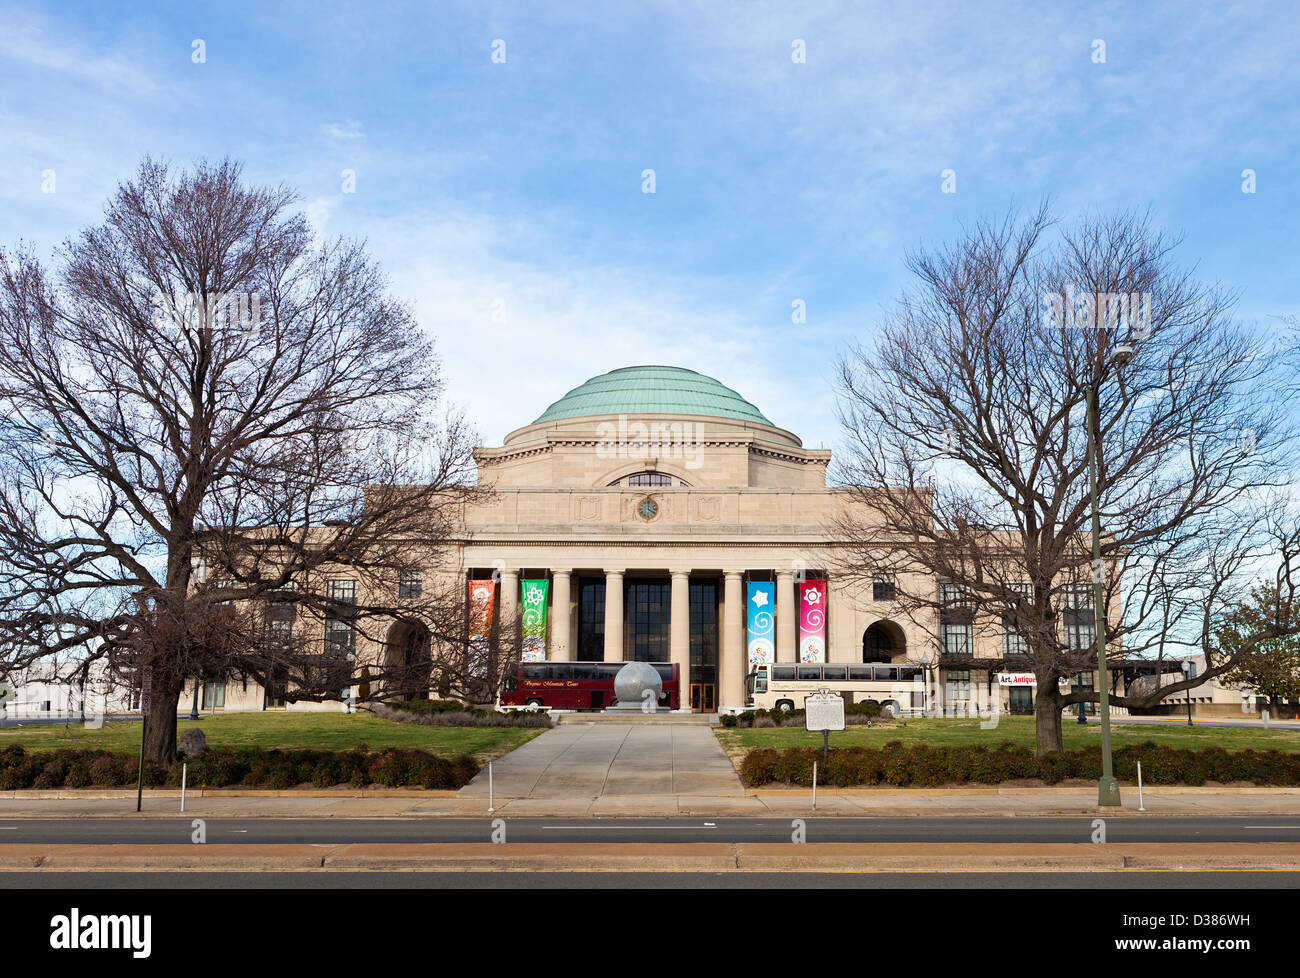 The Science Museum Of Virginia In Richmond, Virginia, USA. - Stock Image